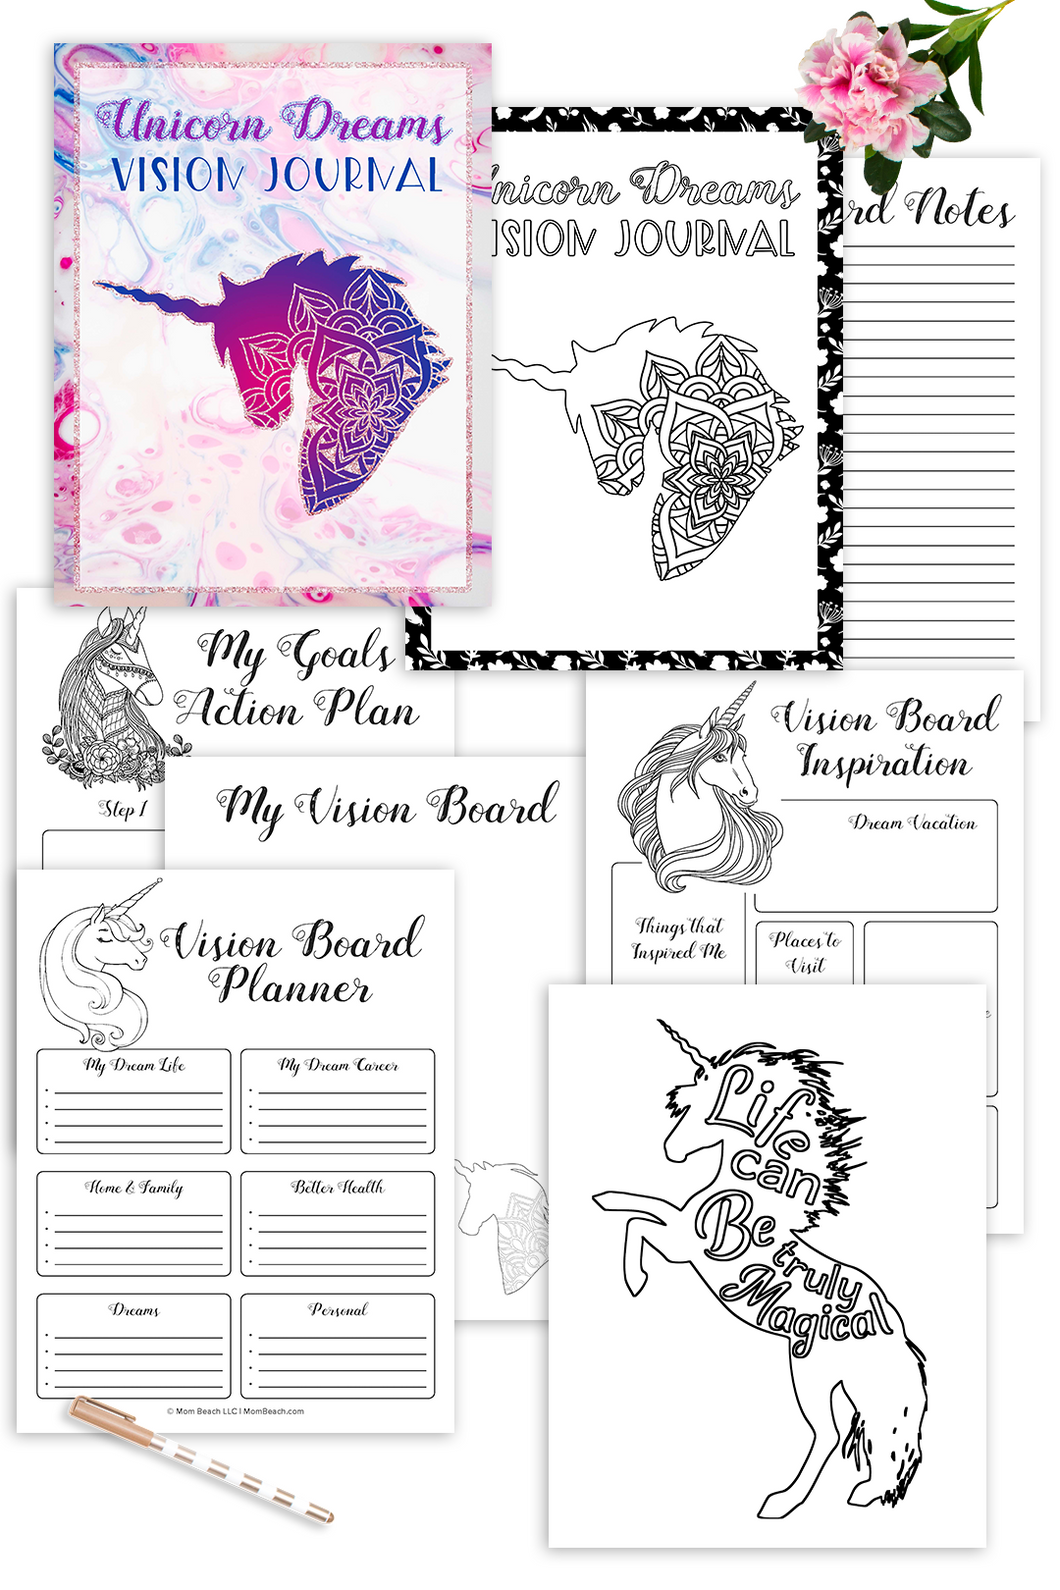 Unicorn Dreams Vision Journal (15 Pages)